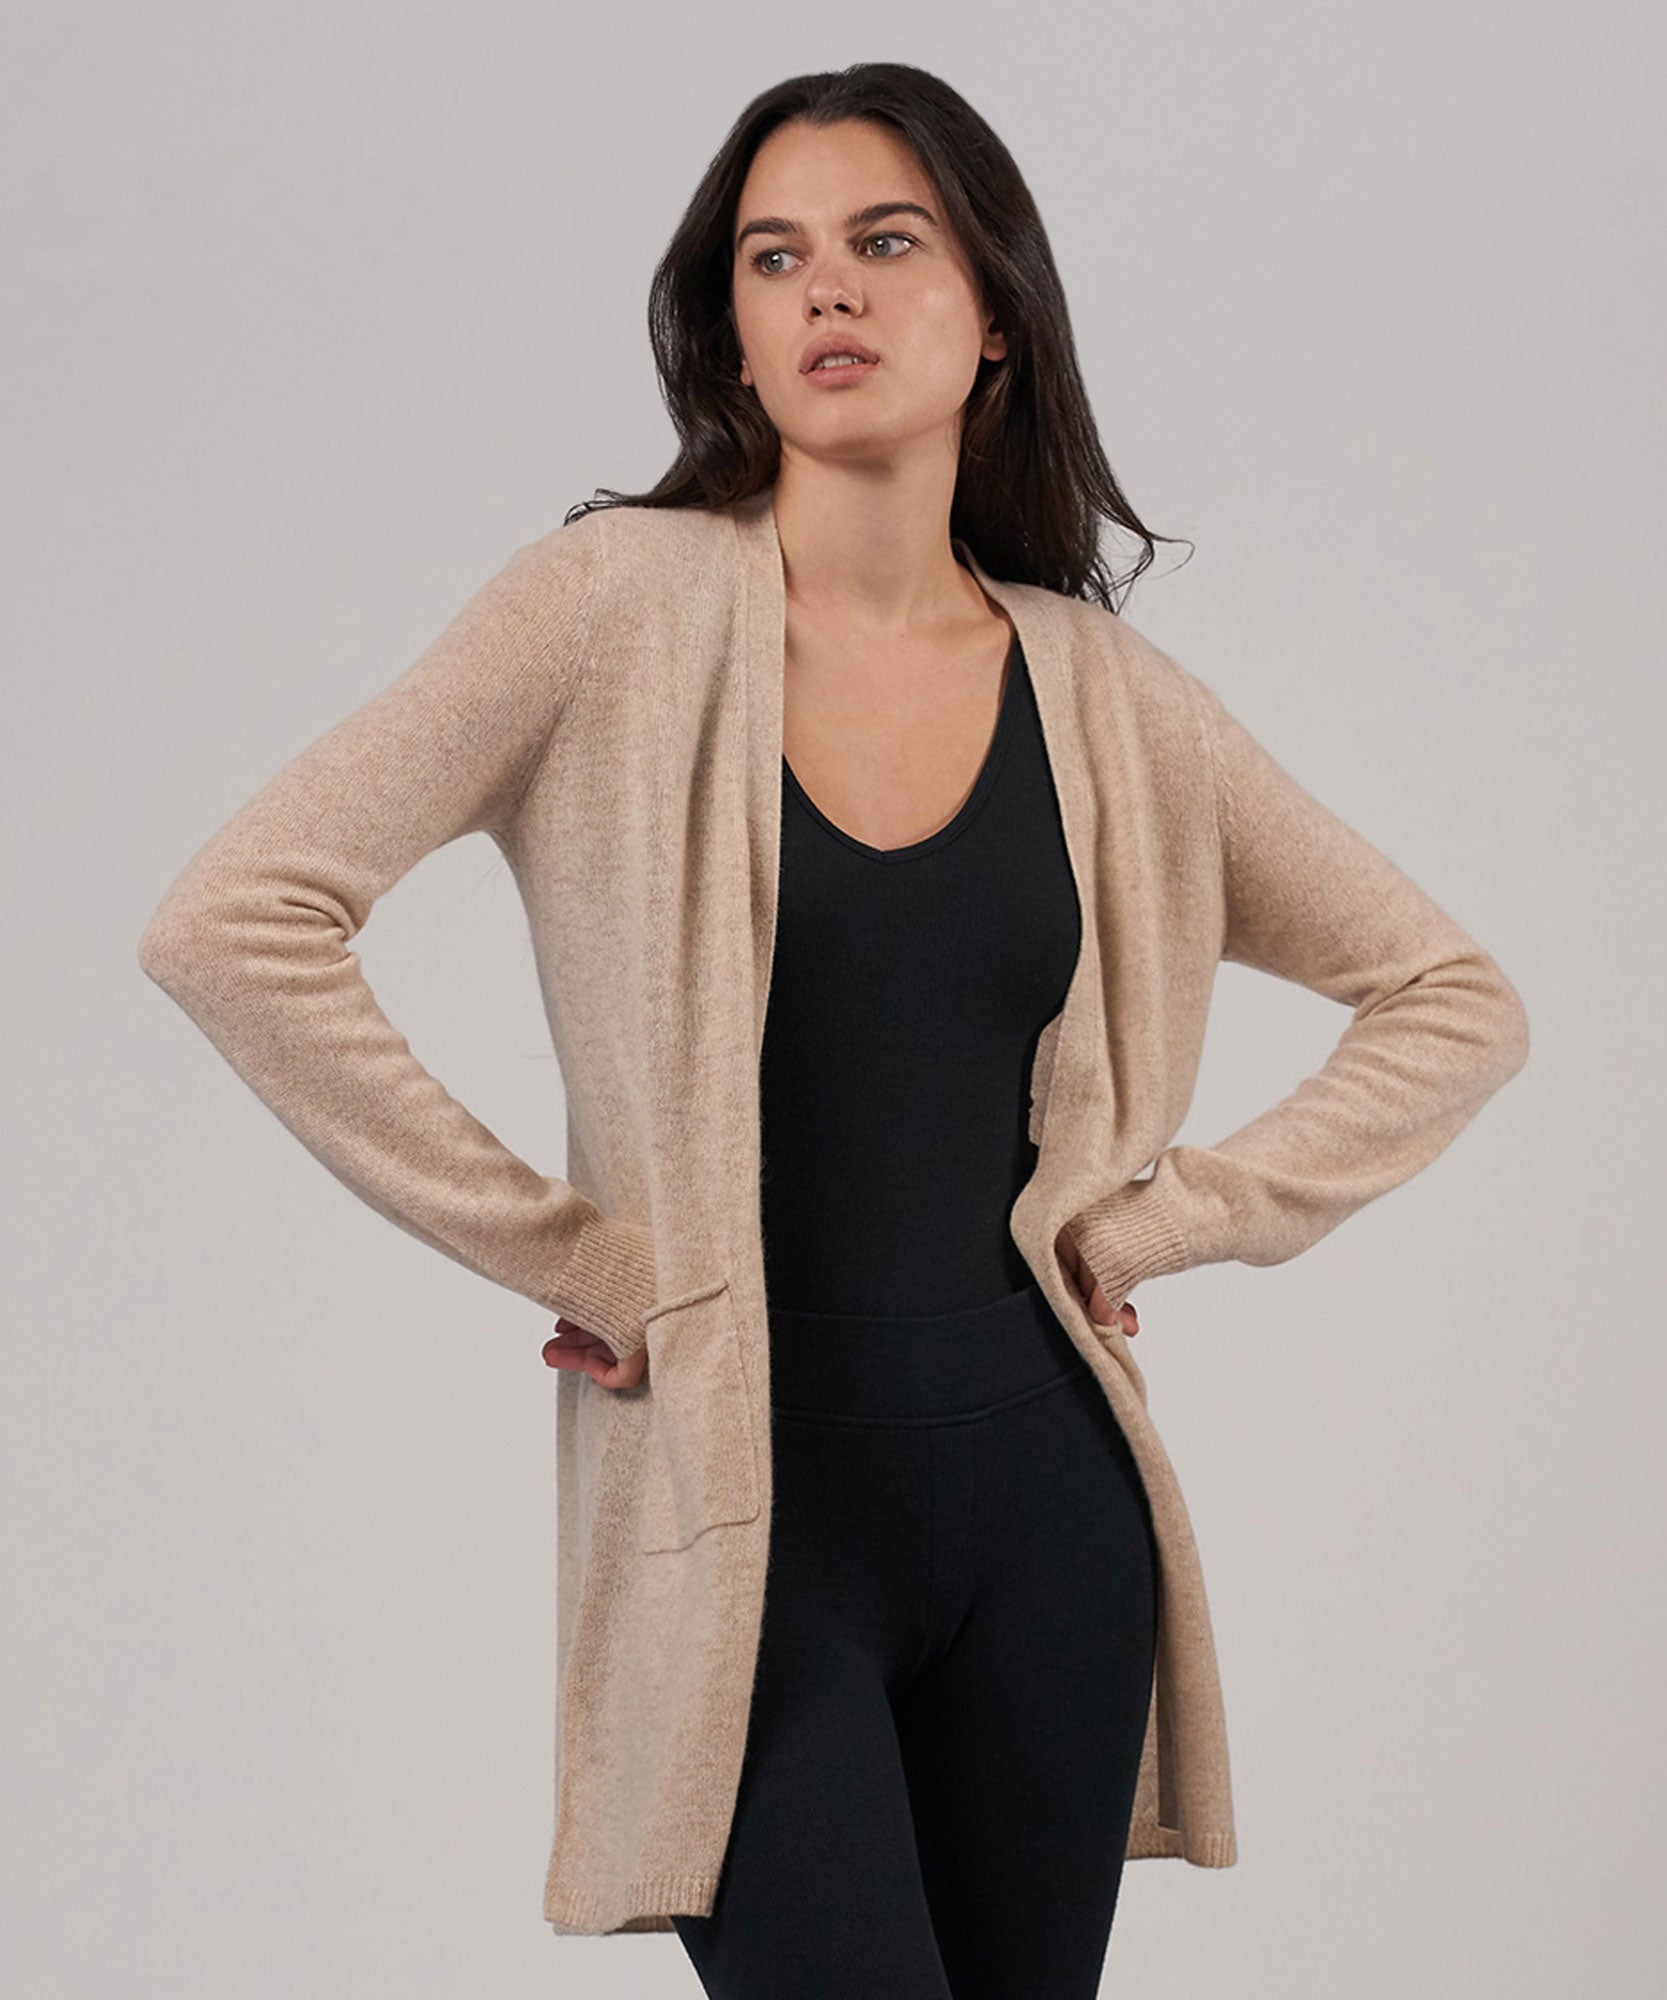 Desert Heather Cashmere Cardigan - Women's Luxe Sweater by ATM Anthony Thomas Melillo